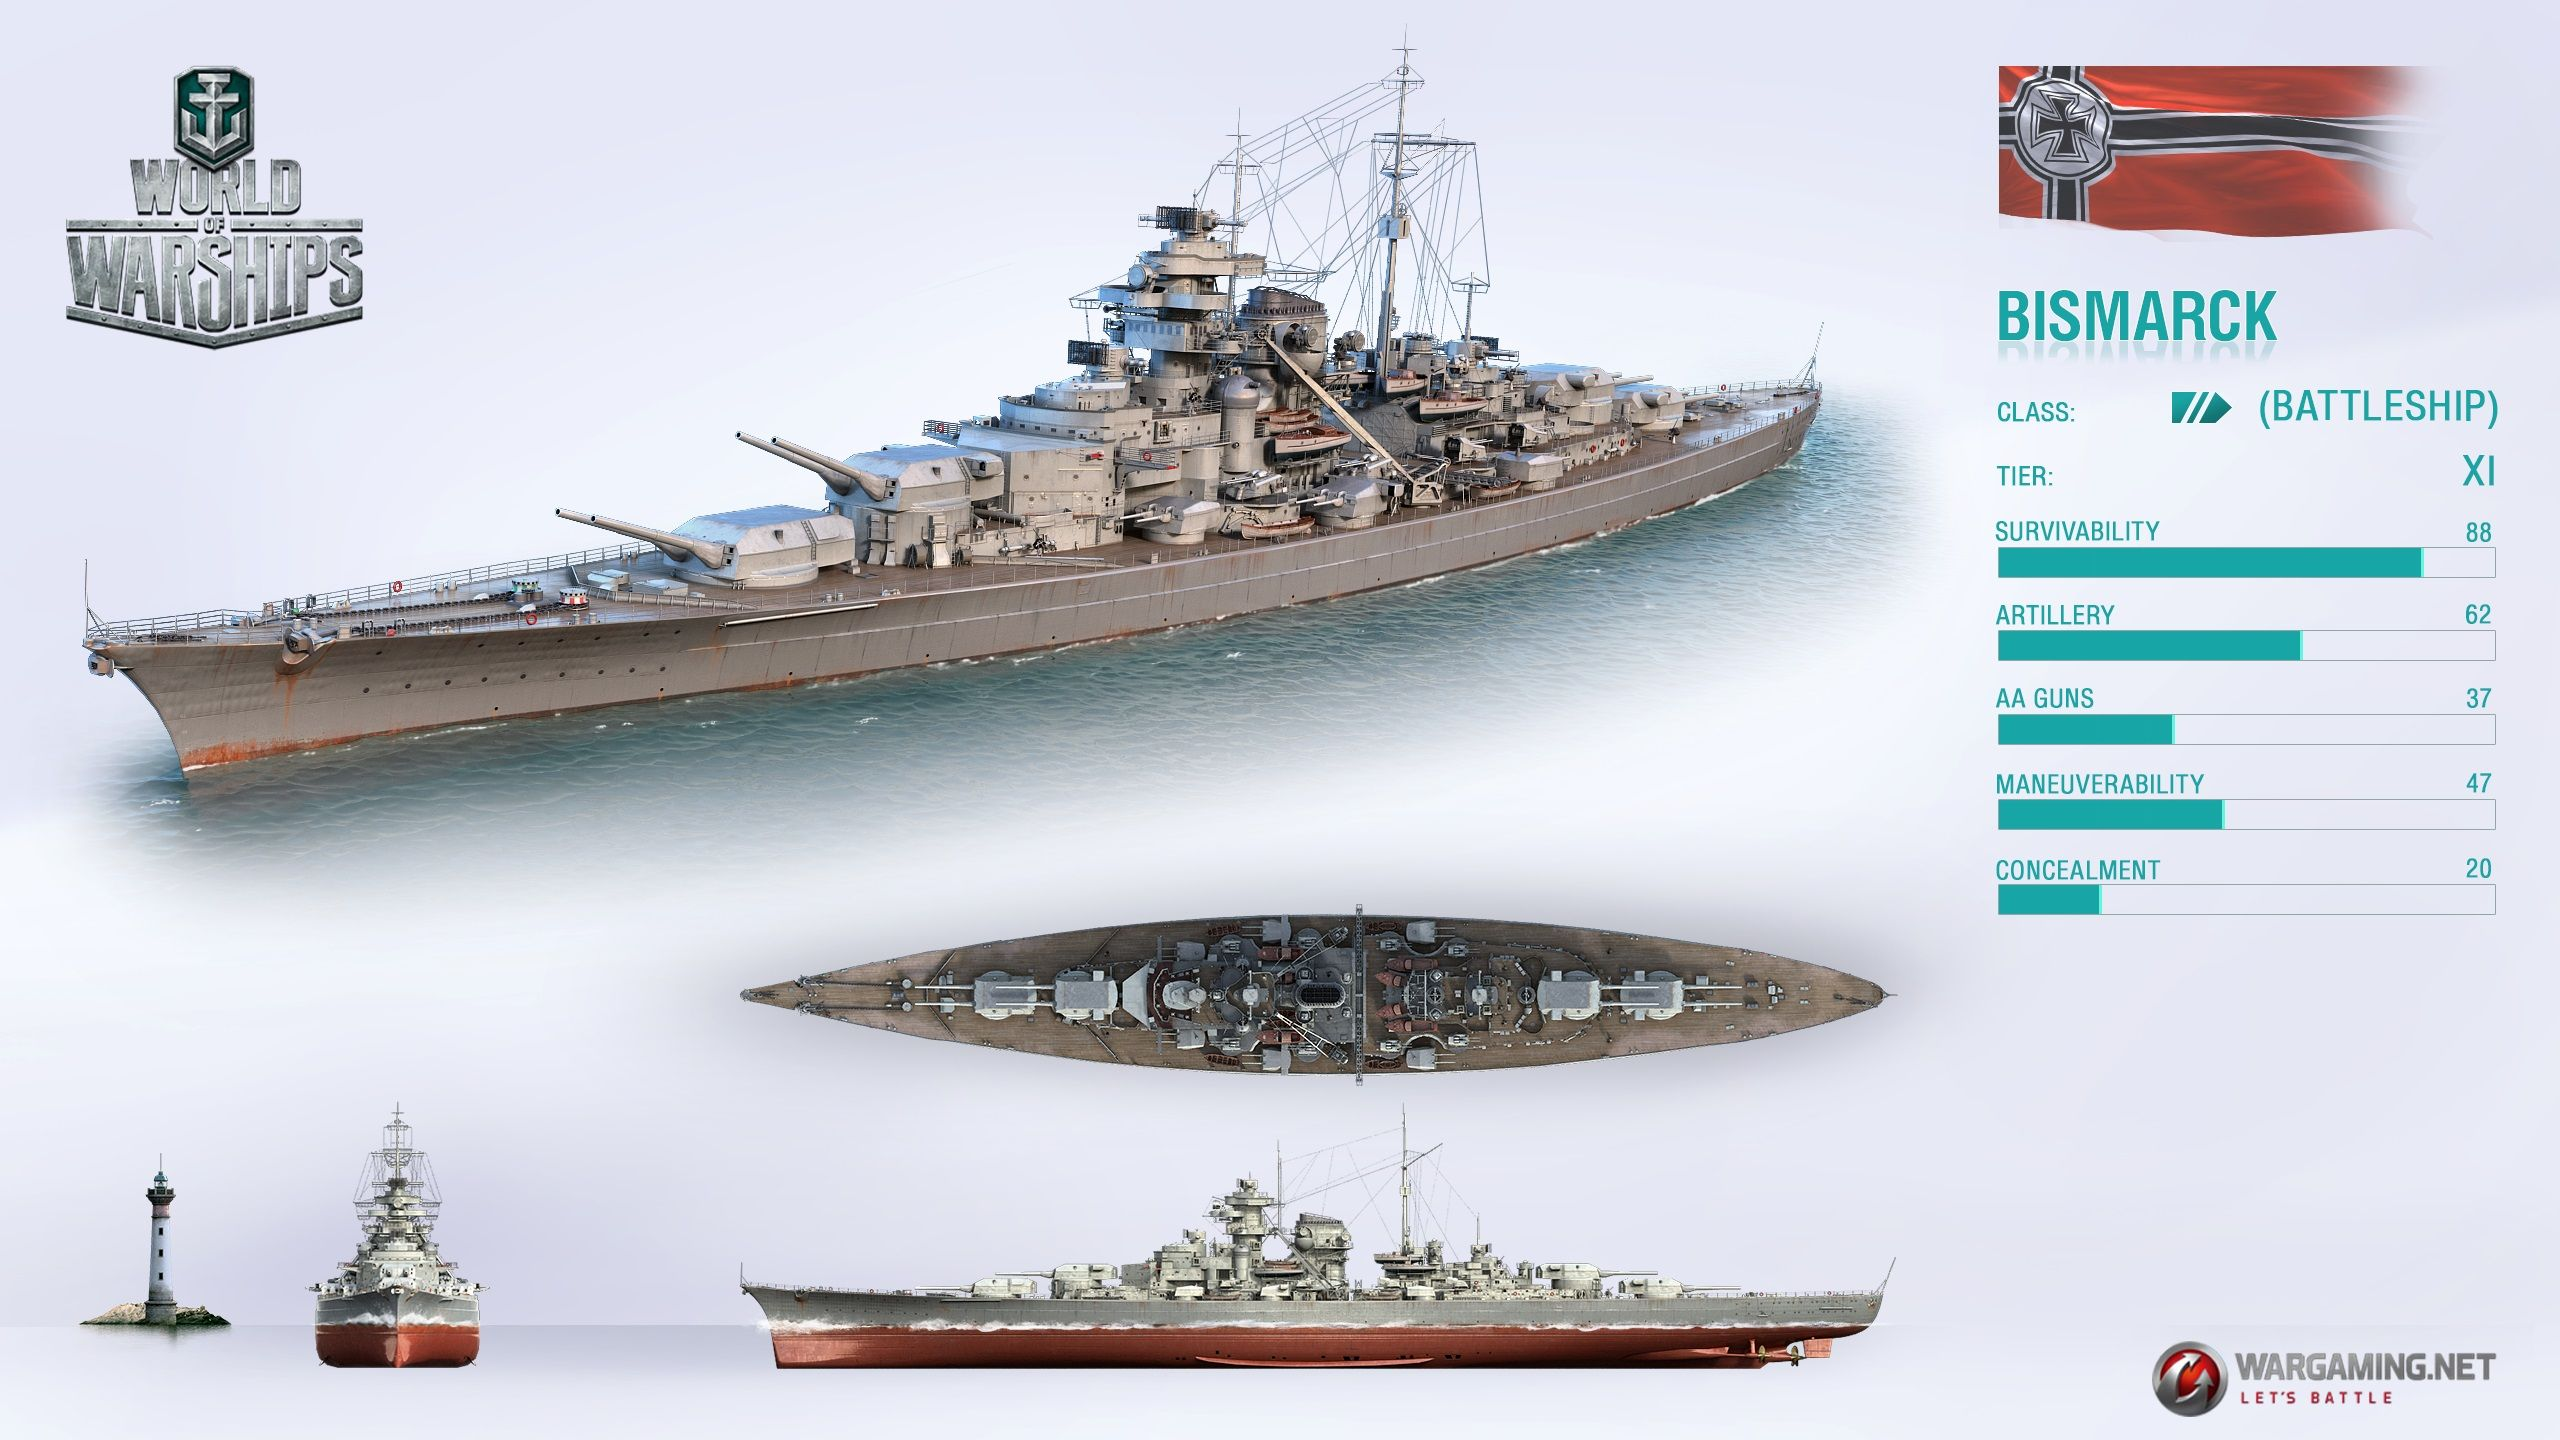 Bismarck Class Battleship Germany With Images Battleship